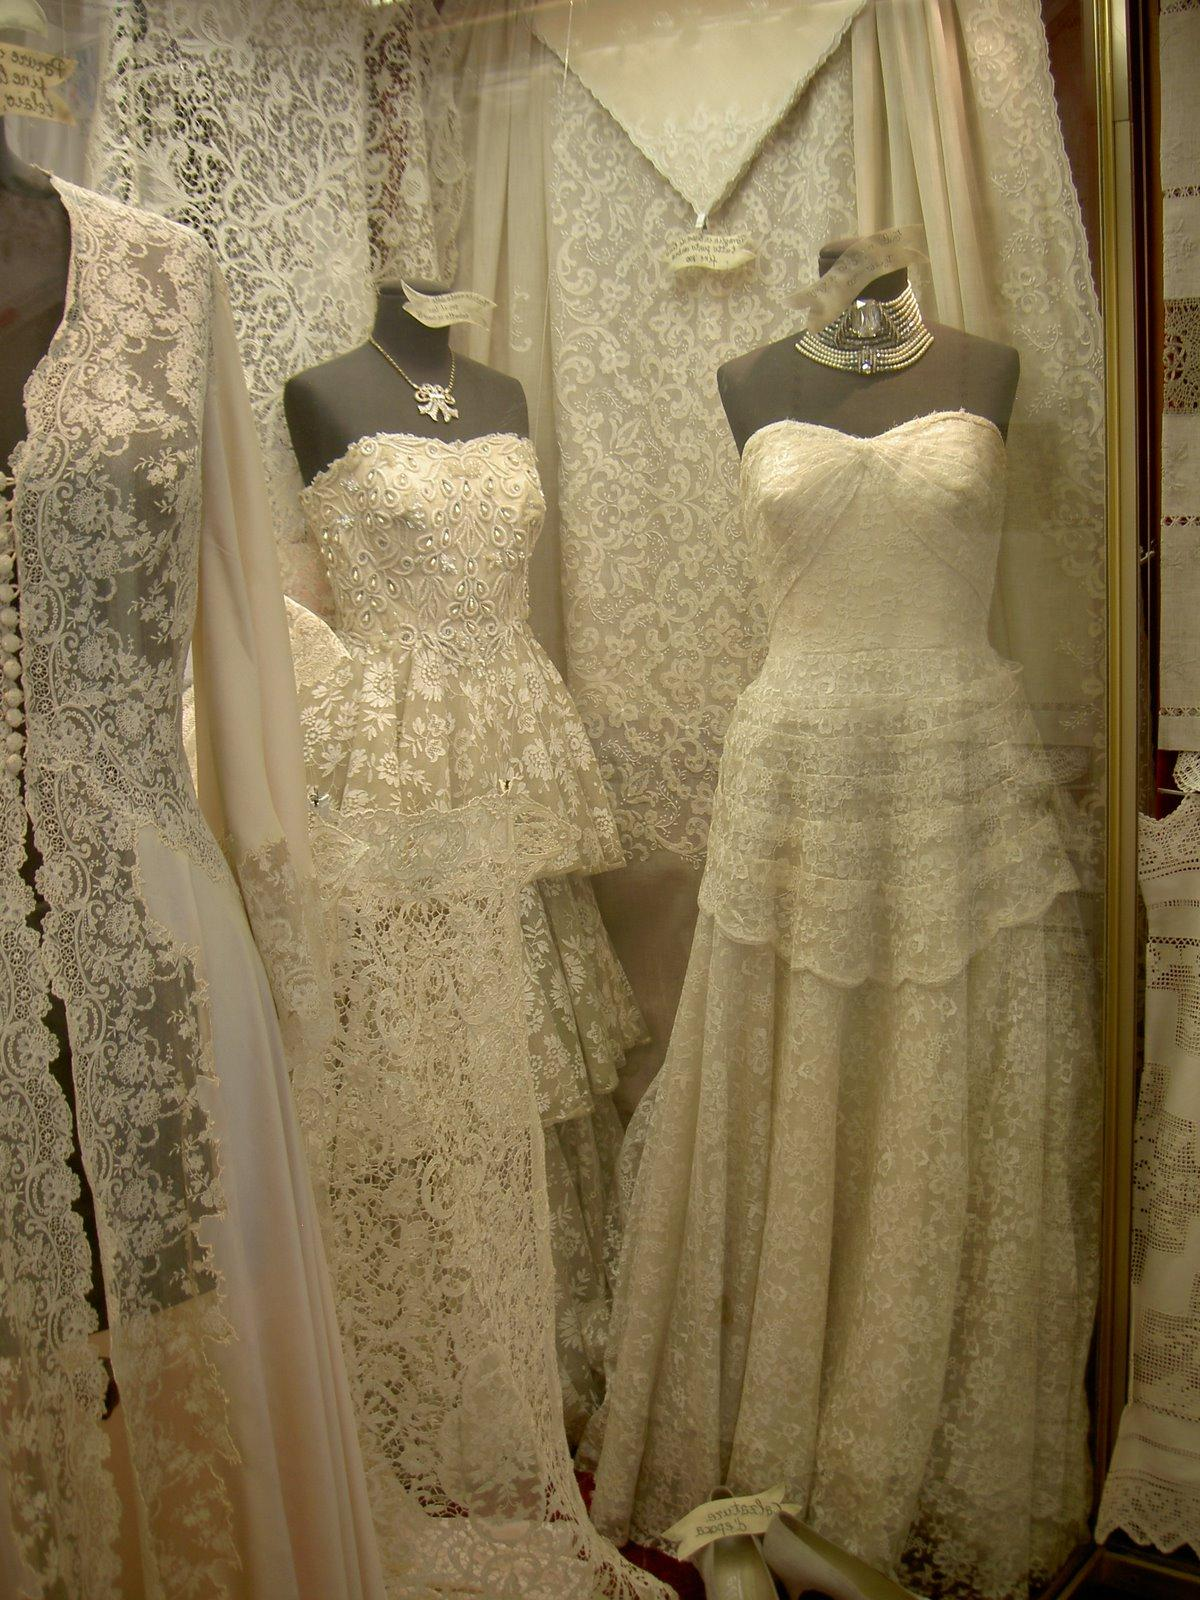 Lace wedding dresses in Murano